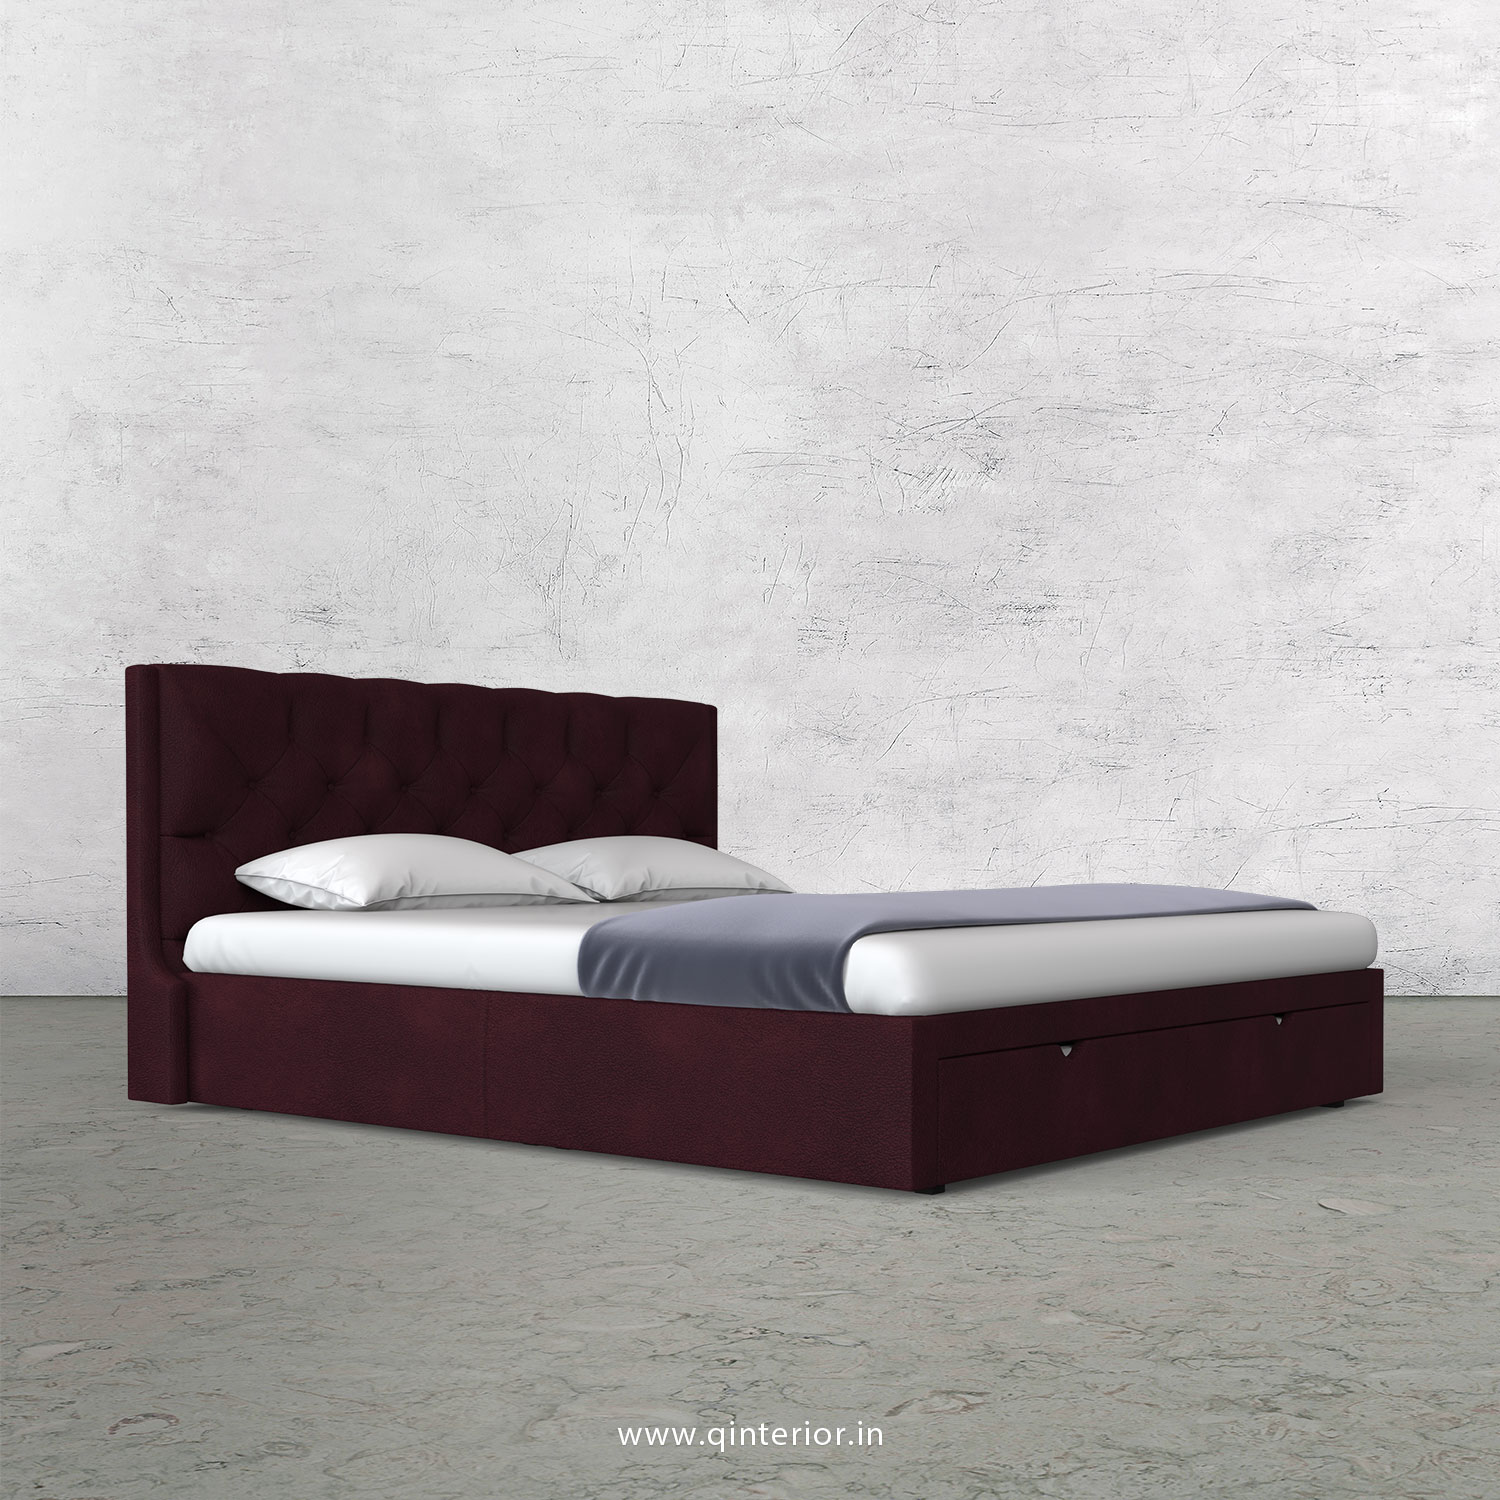 Scorpius King Size Storage Bed in Fab Leather Fabric - KBD001 FL12